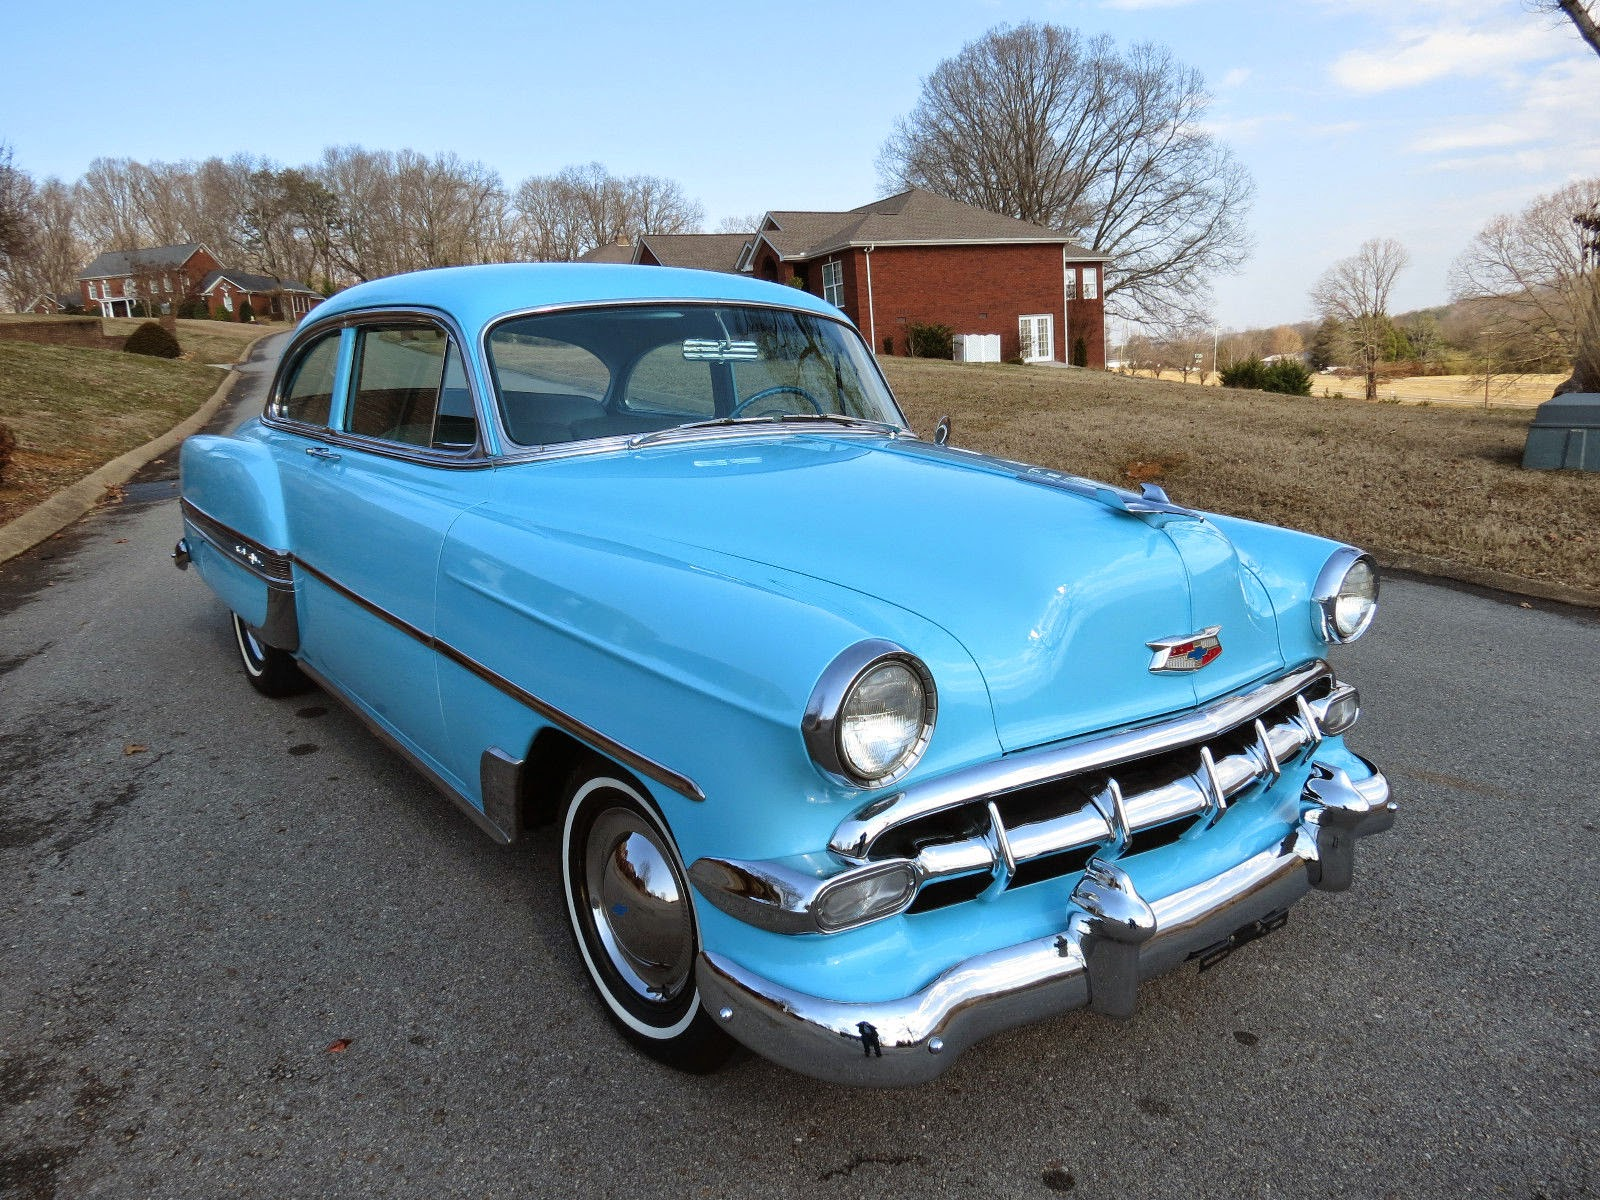 All American Classic Cars 1954 Chevrolet Bel Air 2 Door Sedan 4